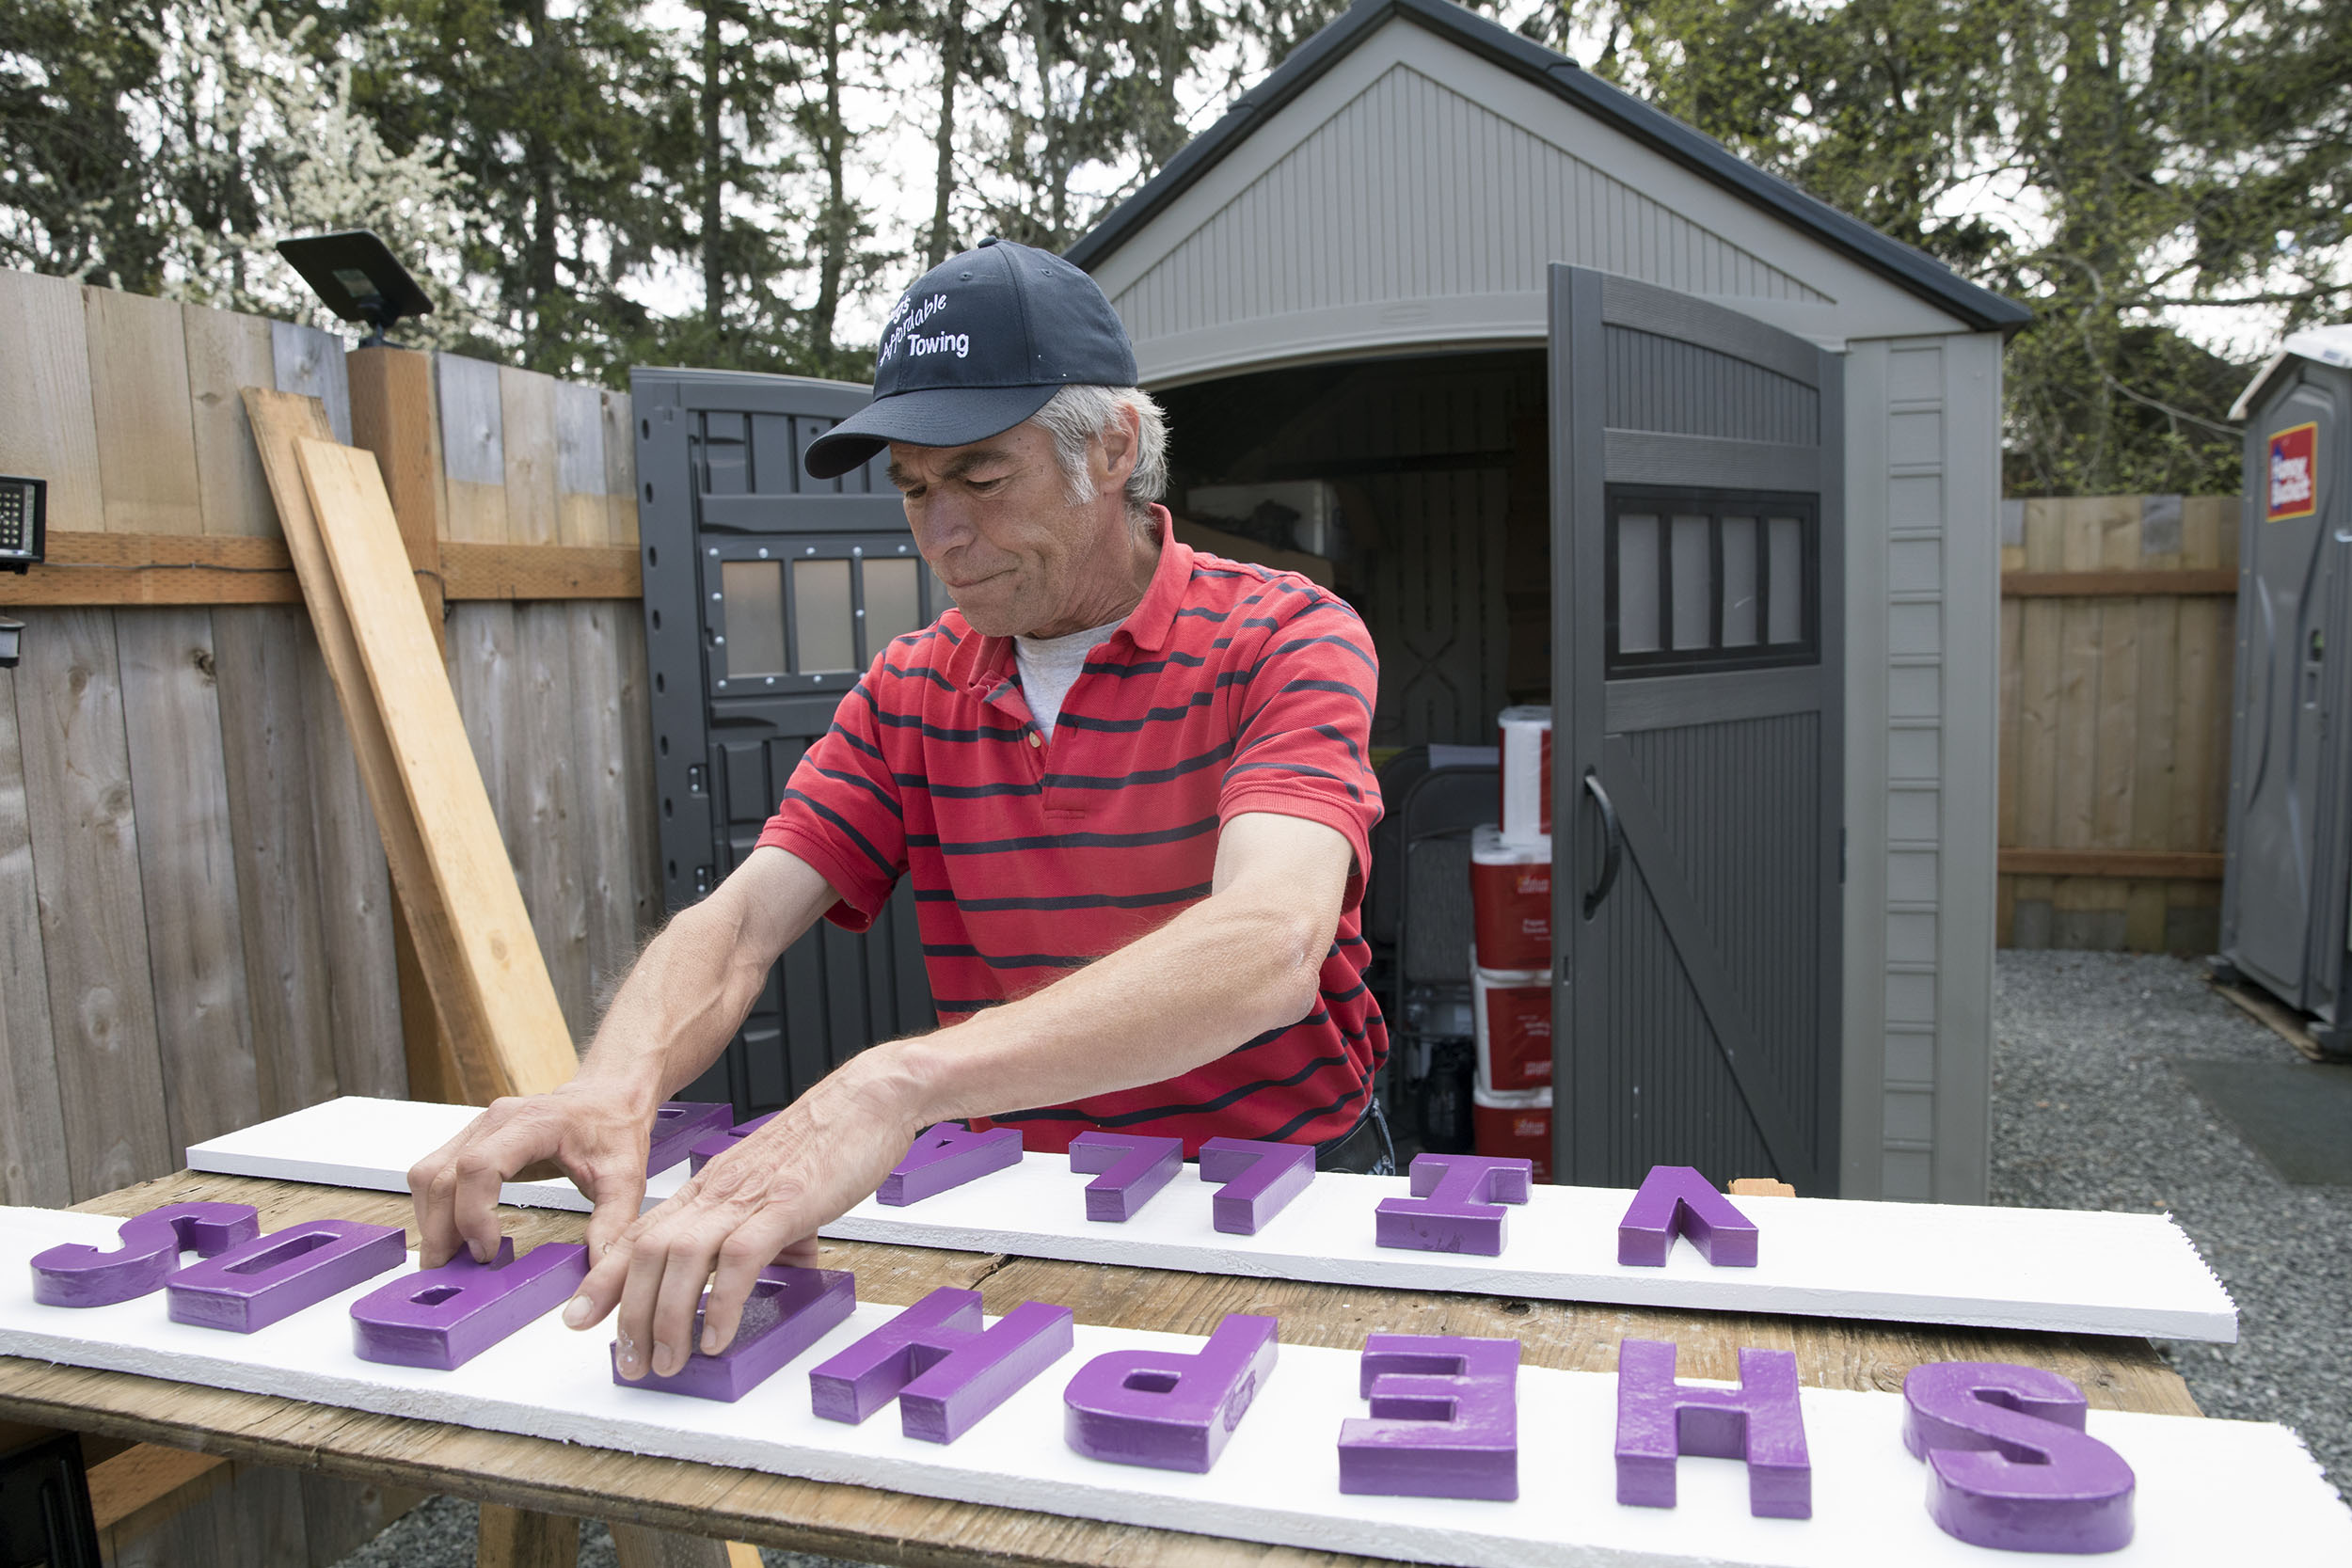 Lynnwood uses disaster shelters for the homeless. Could Seattle?